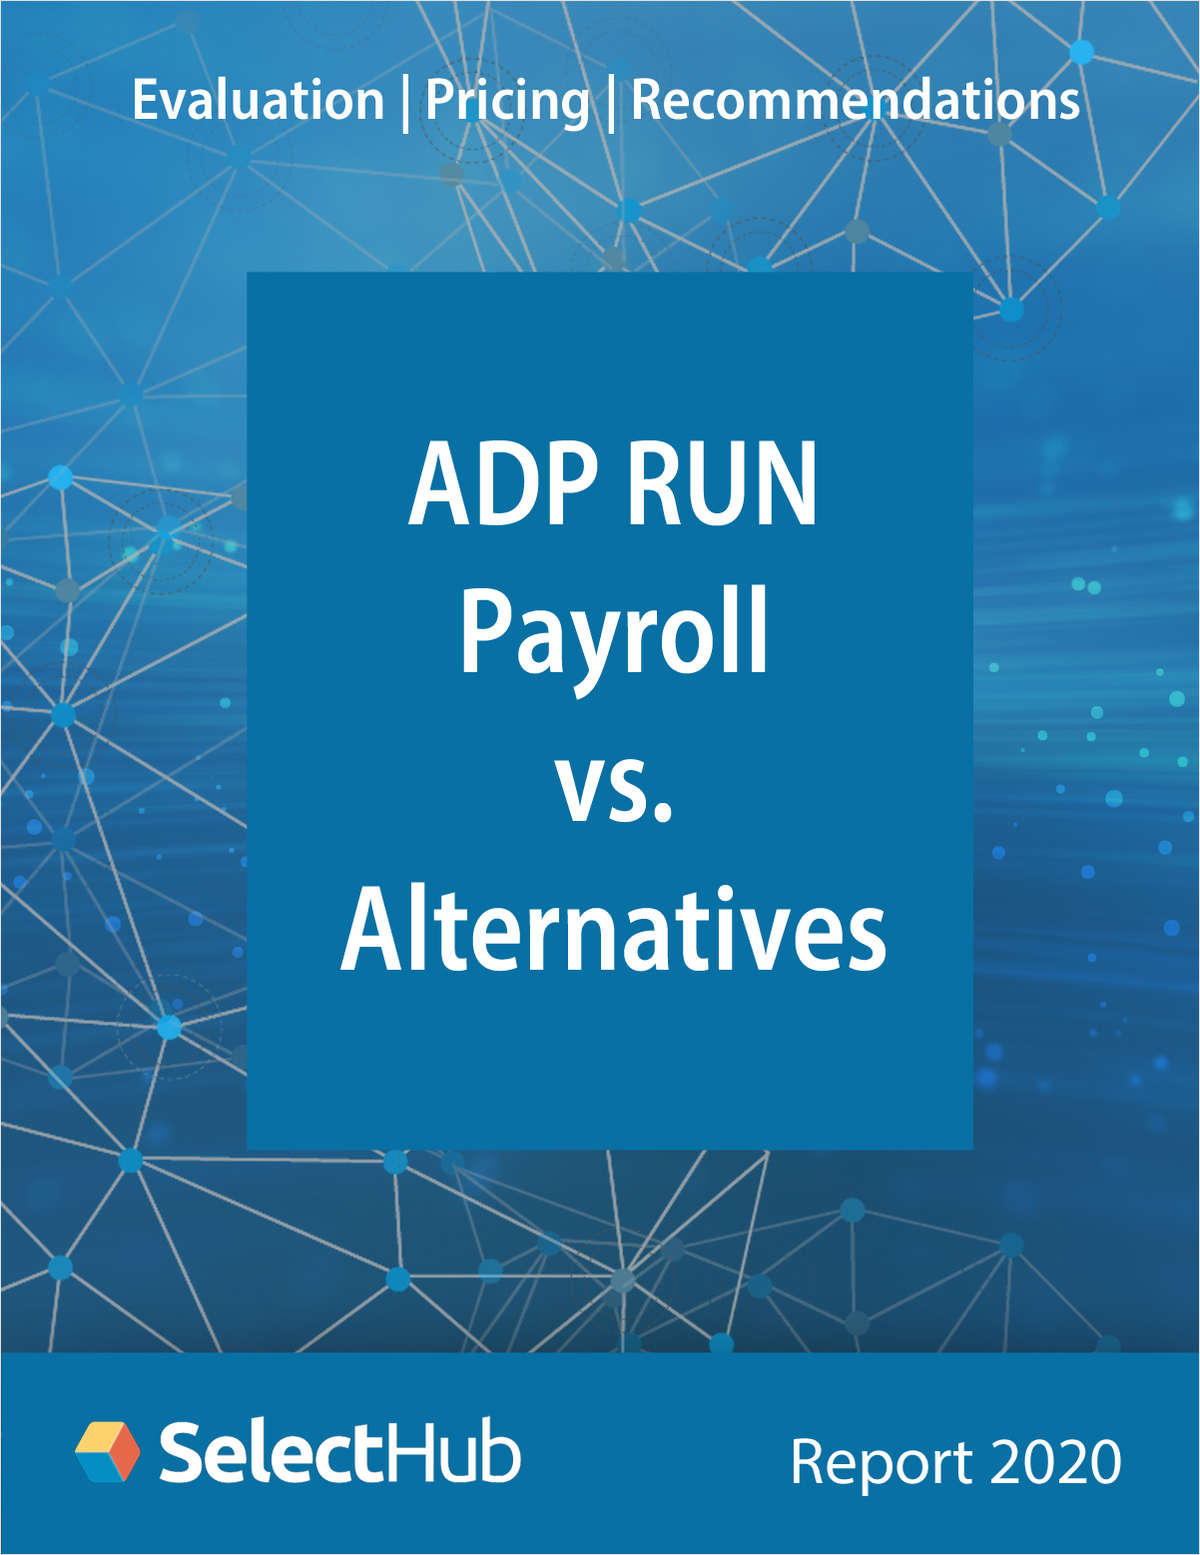 ADP RUN Payroll vs. Top Alternatives―Expert Evaluations, Pricing & Recommendations